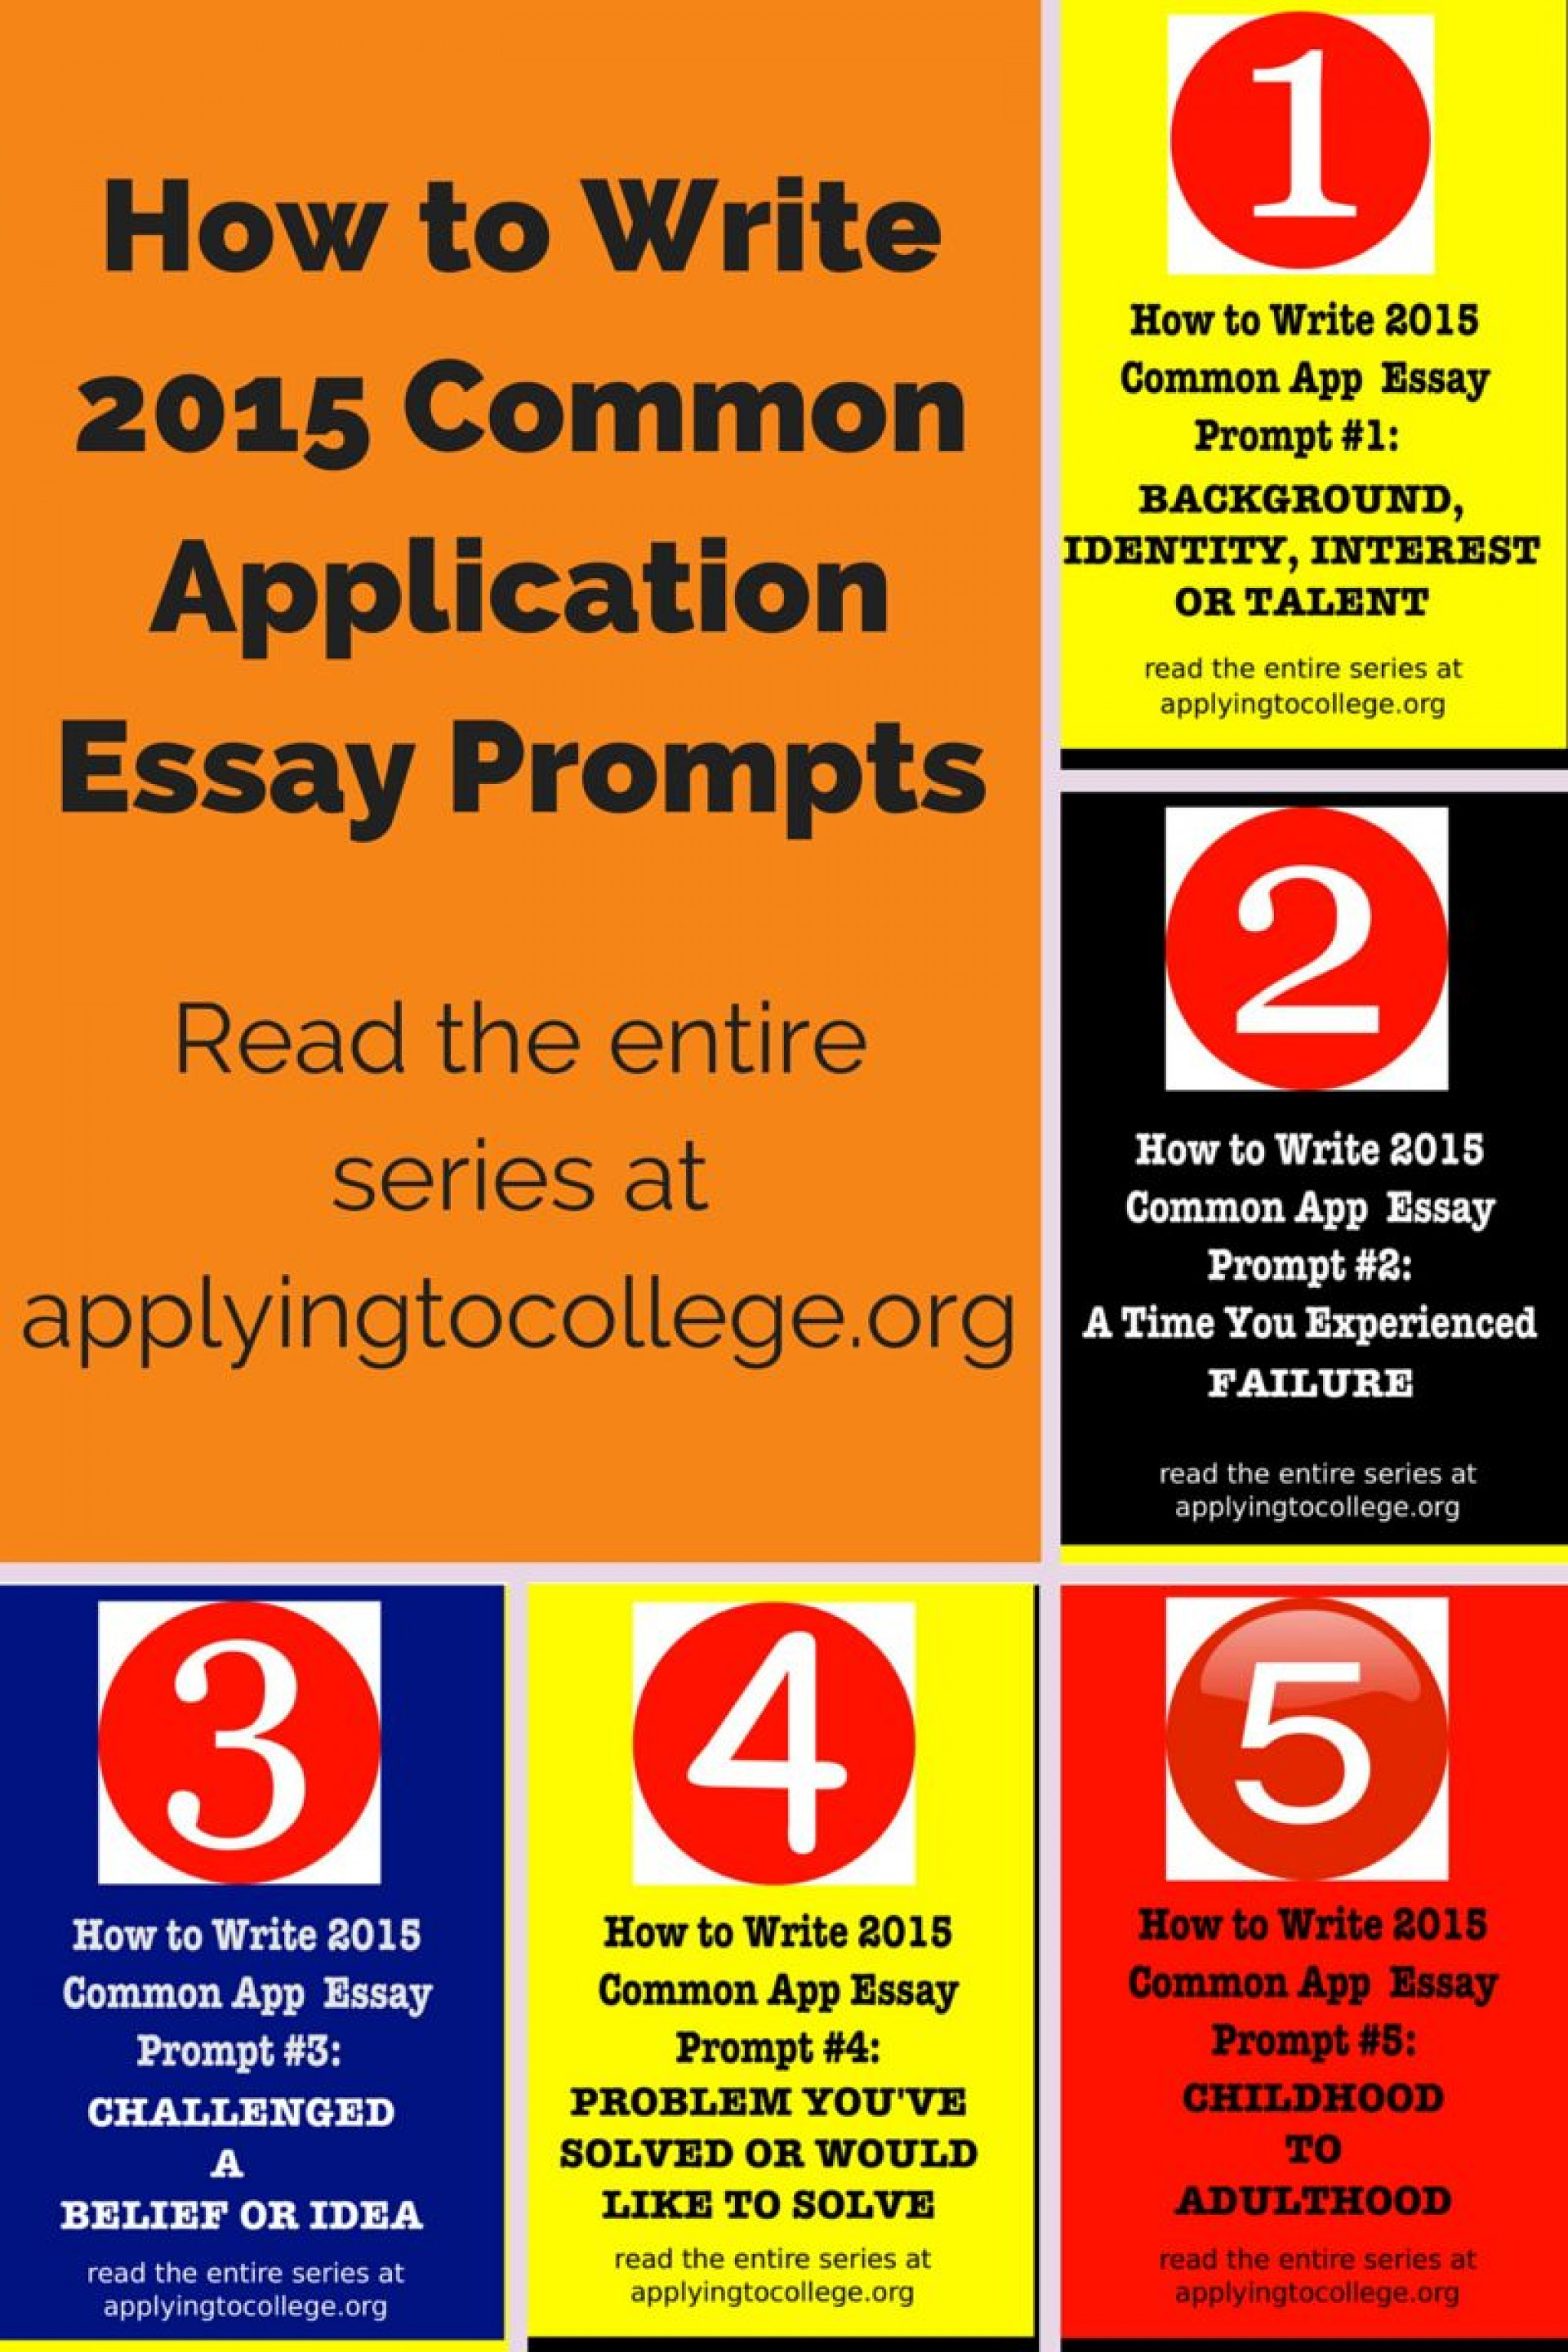 001 Common Application Essay Prompts Example Surprising 2015 App 1920